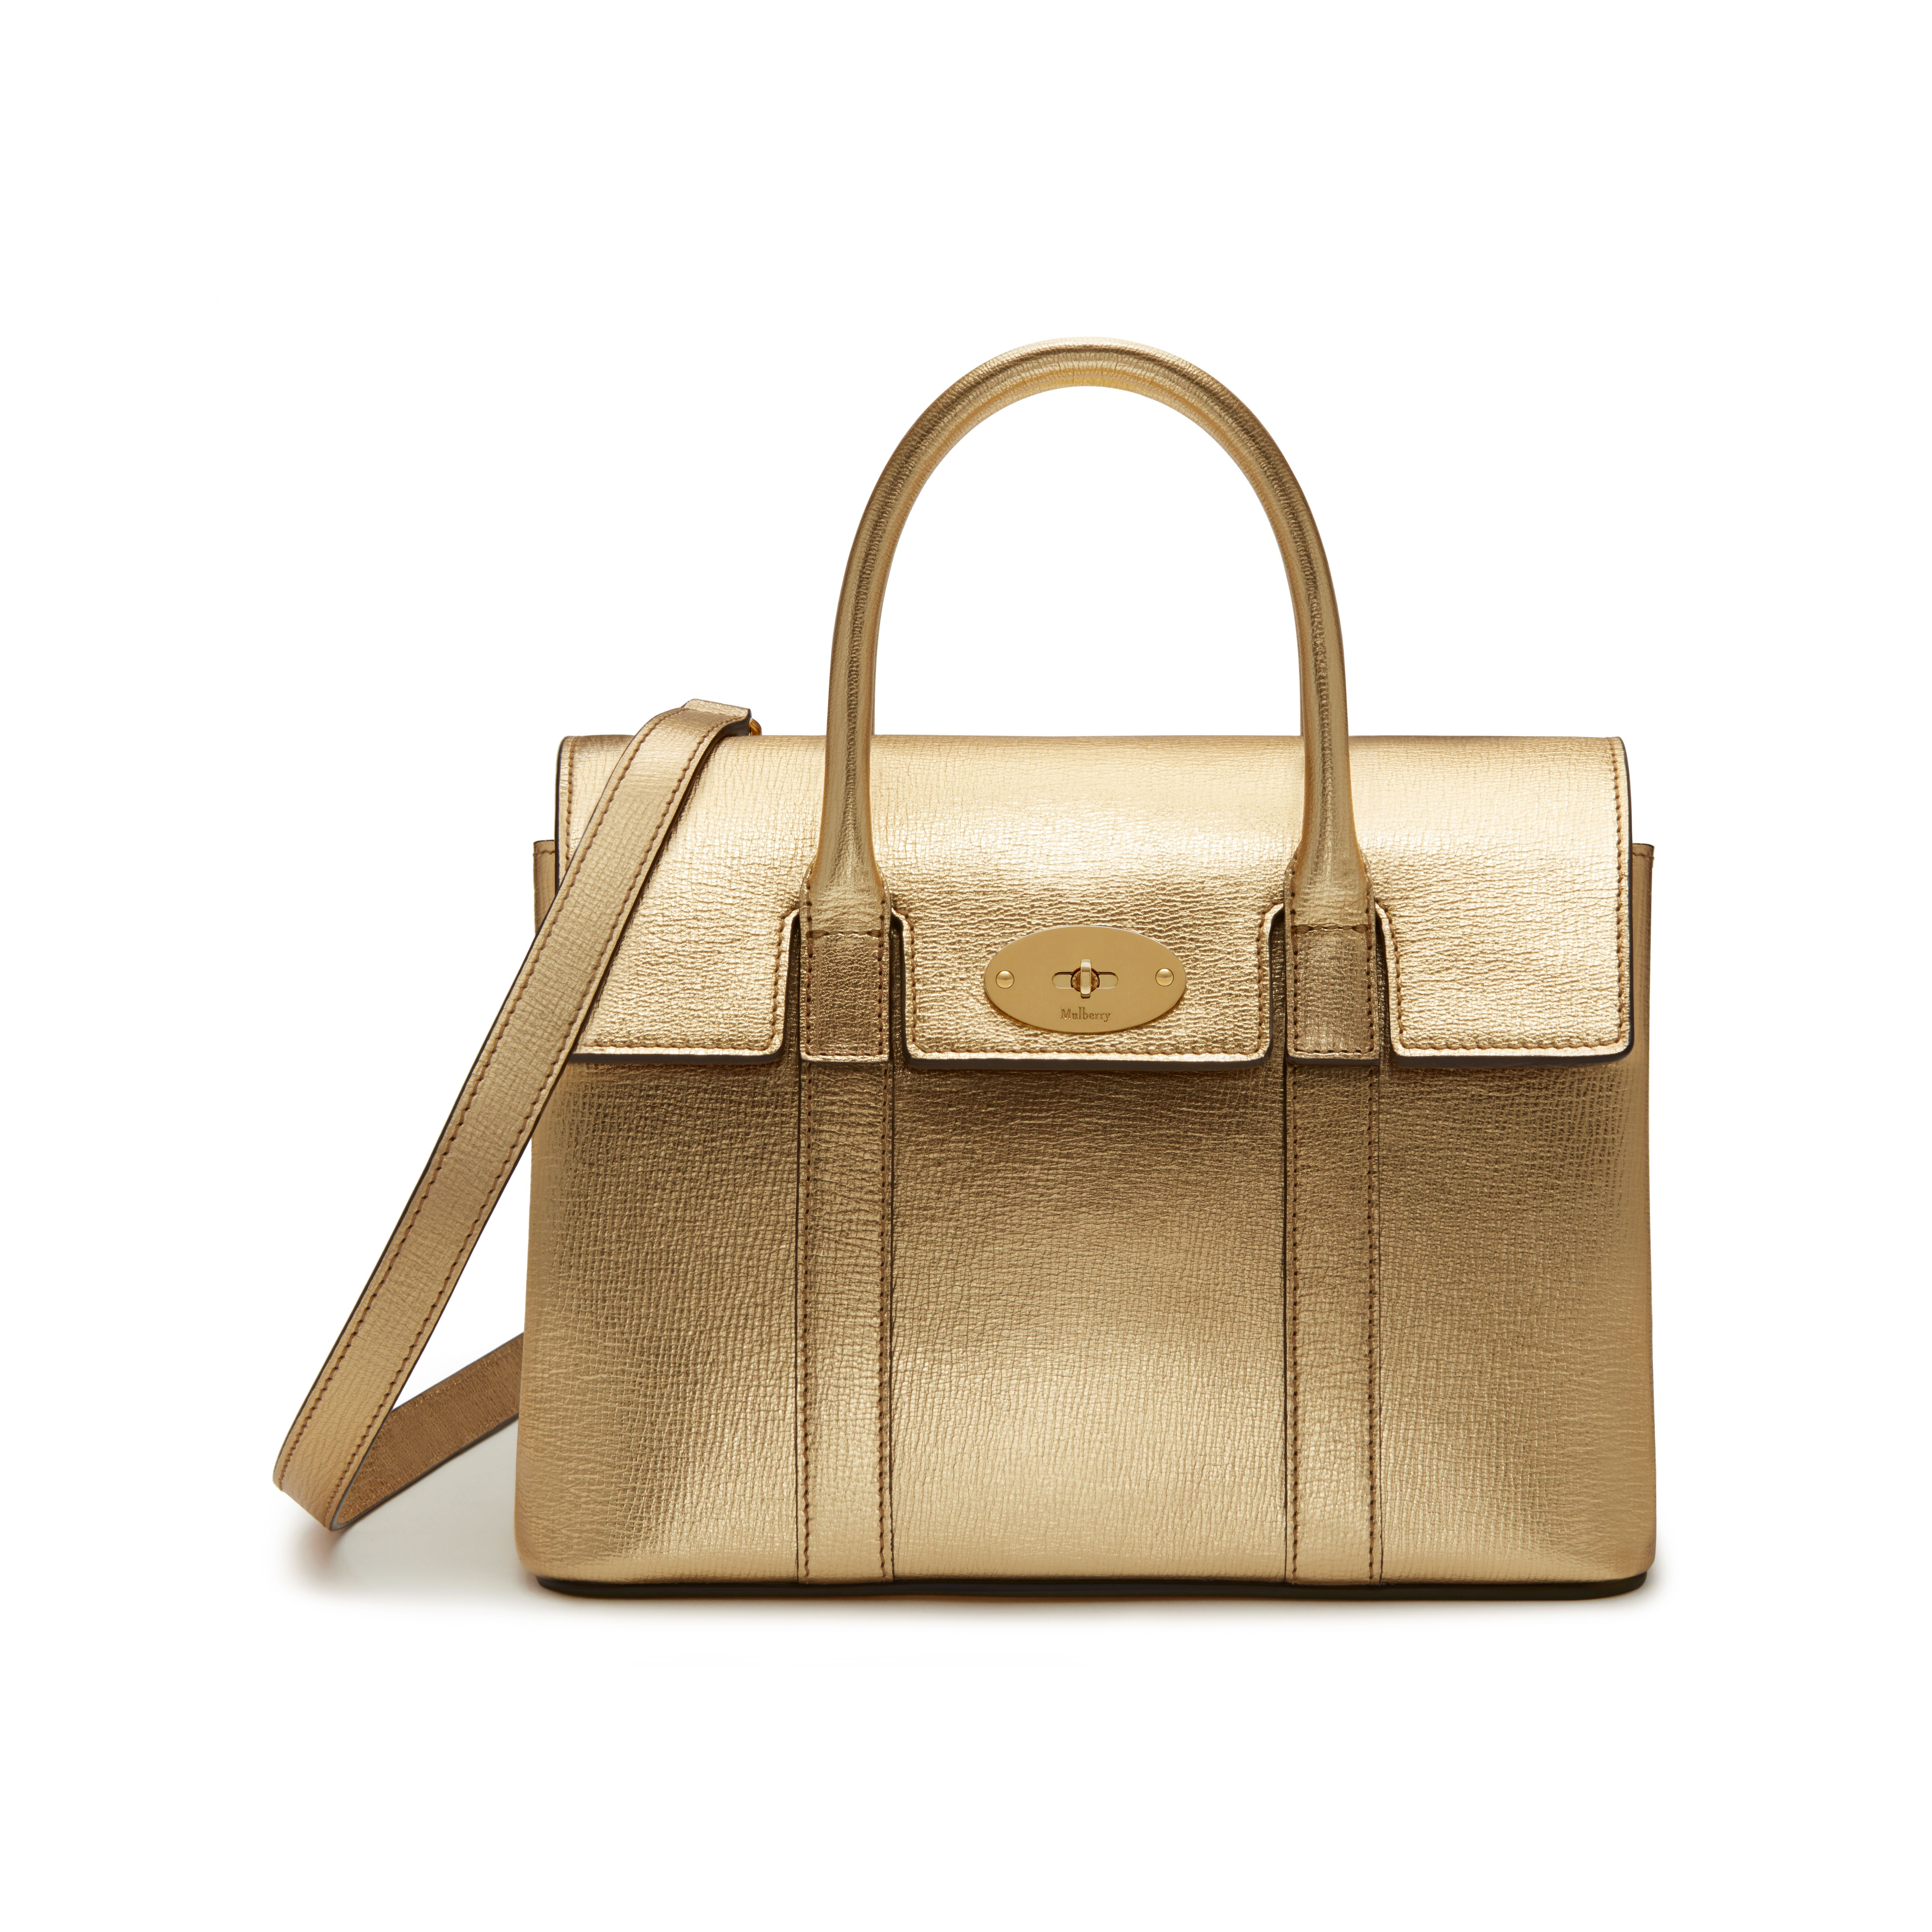 687e294b71 ... australia the mulberry lily pics only page 6 purseforum small bayswater  gold metallic printed goat women